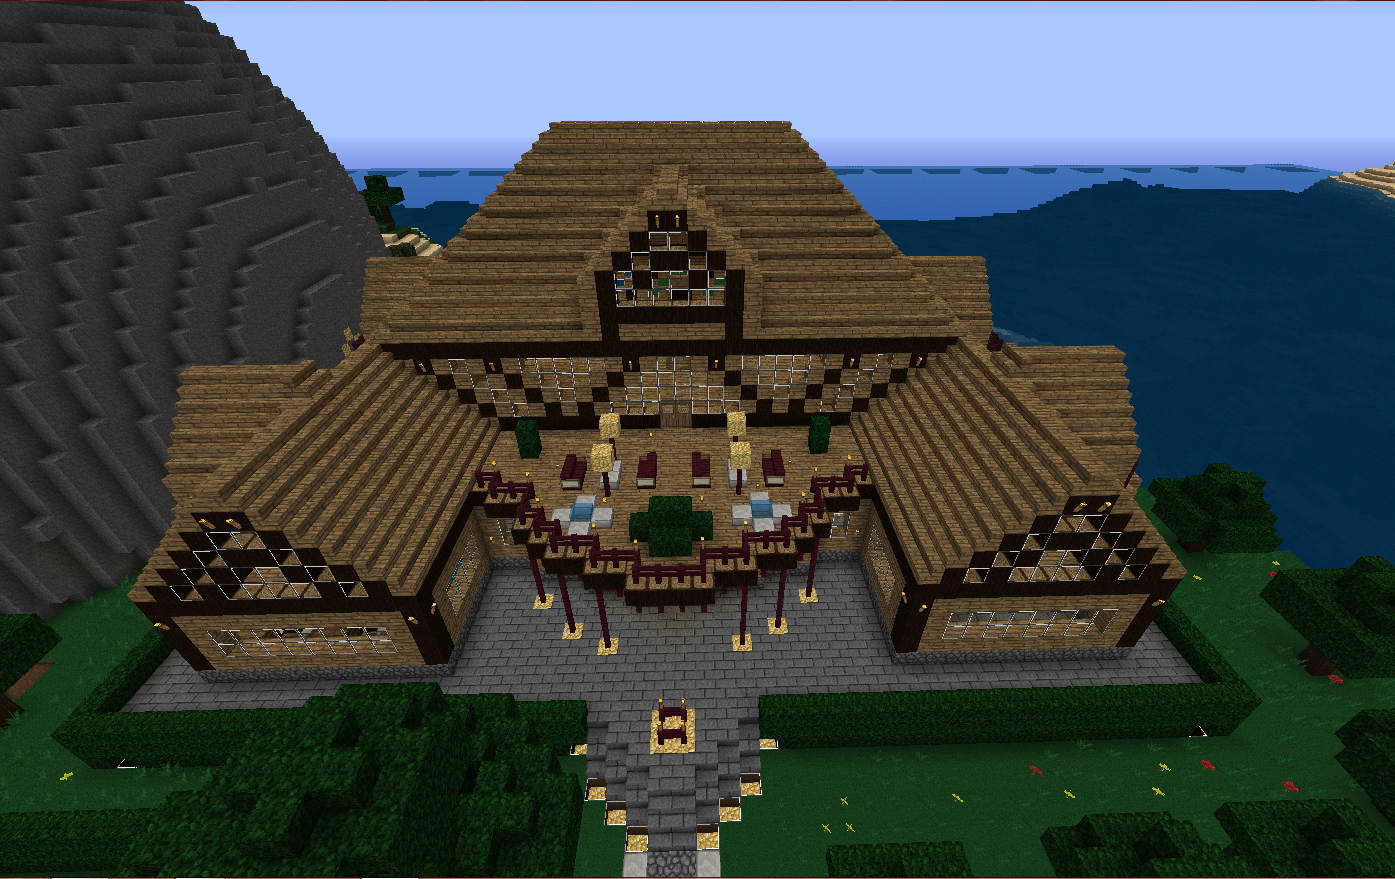 Maison en bois minecraft - Construction maison minecraft ...